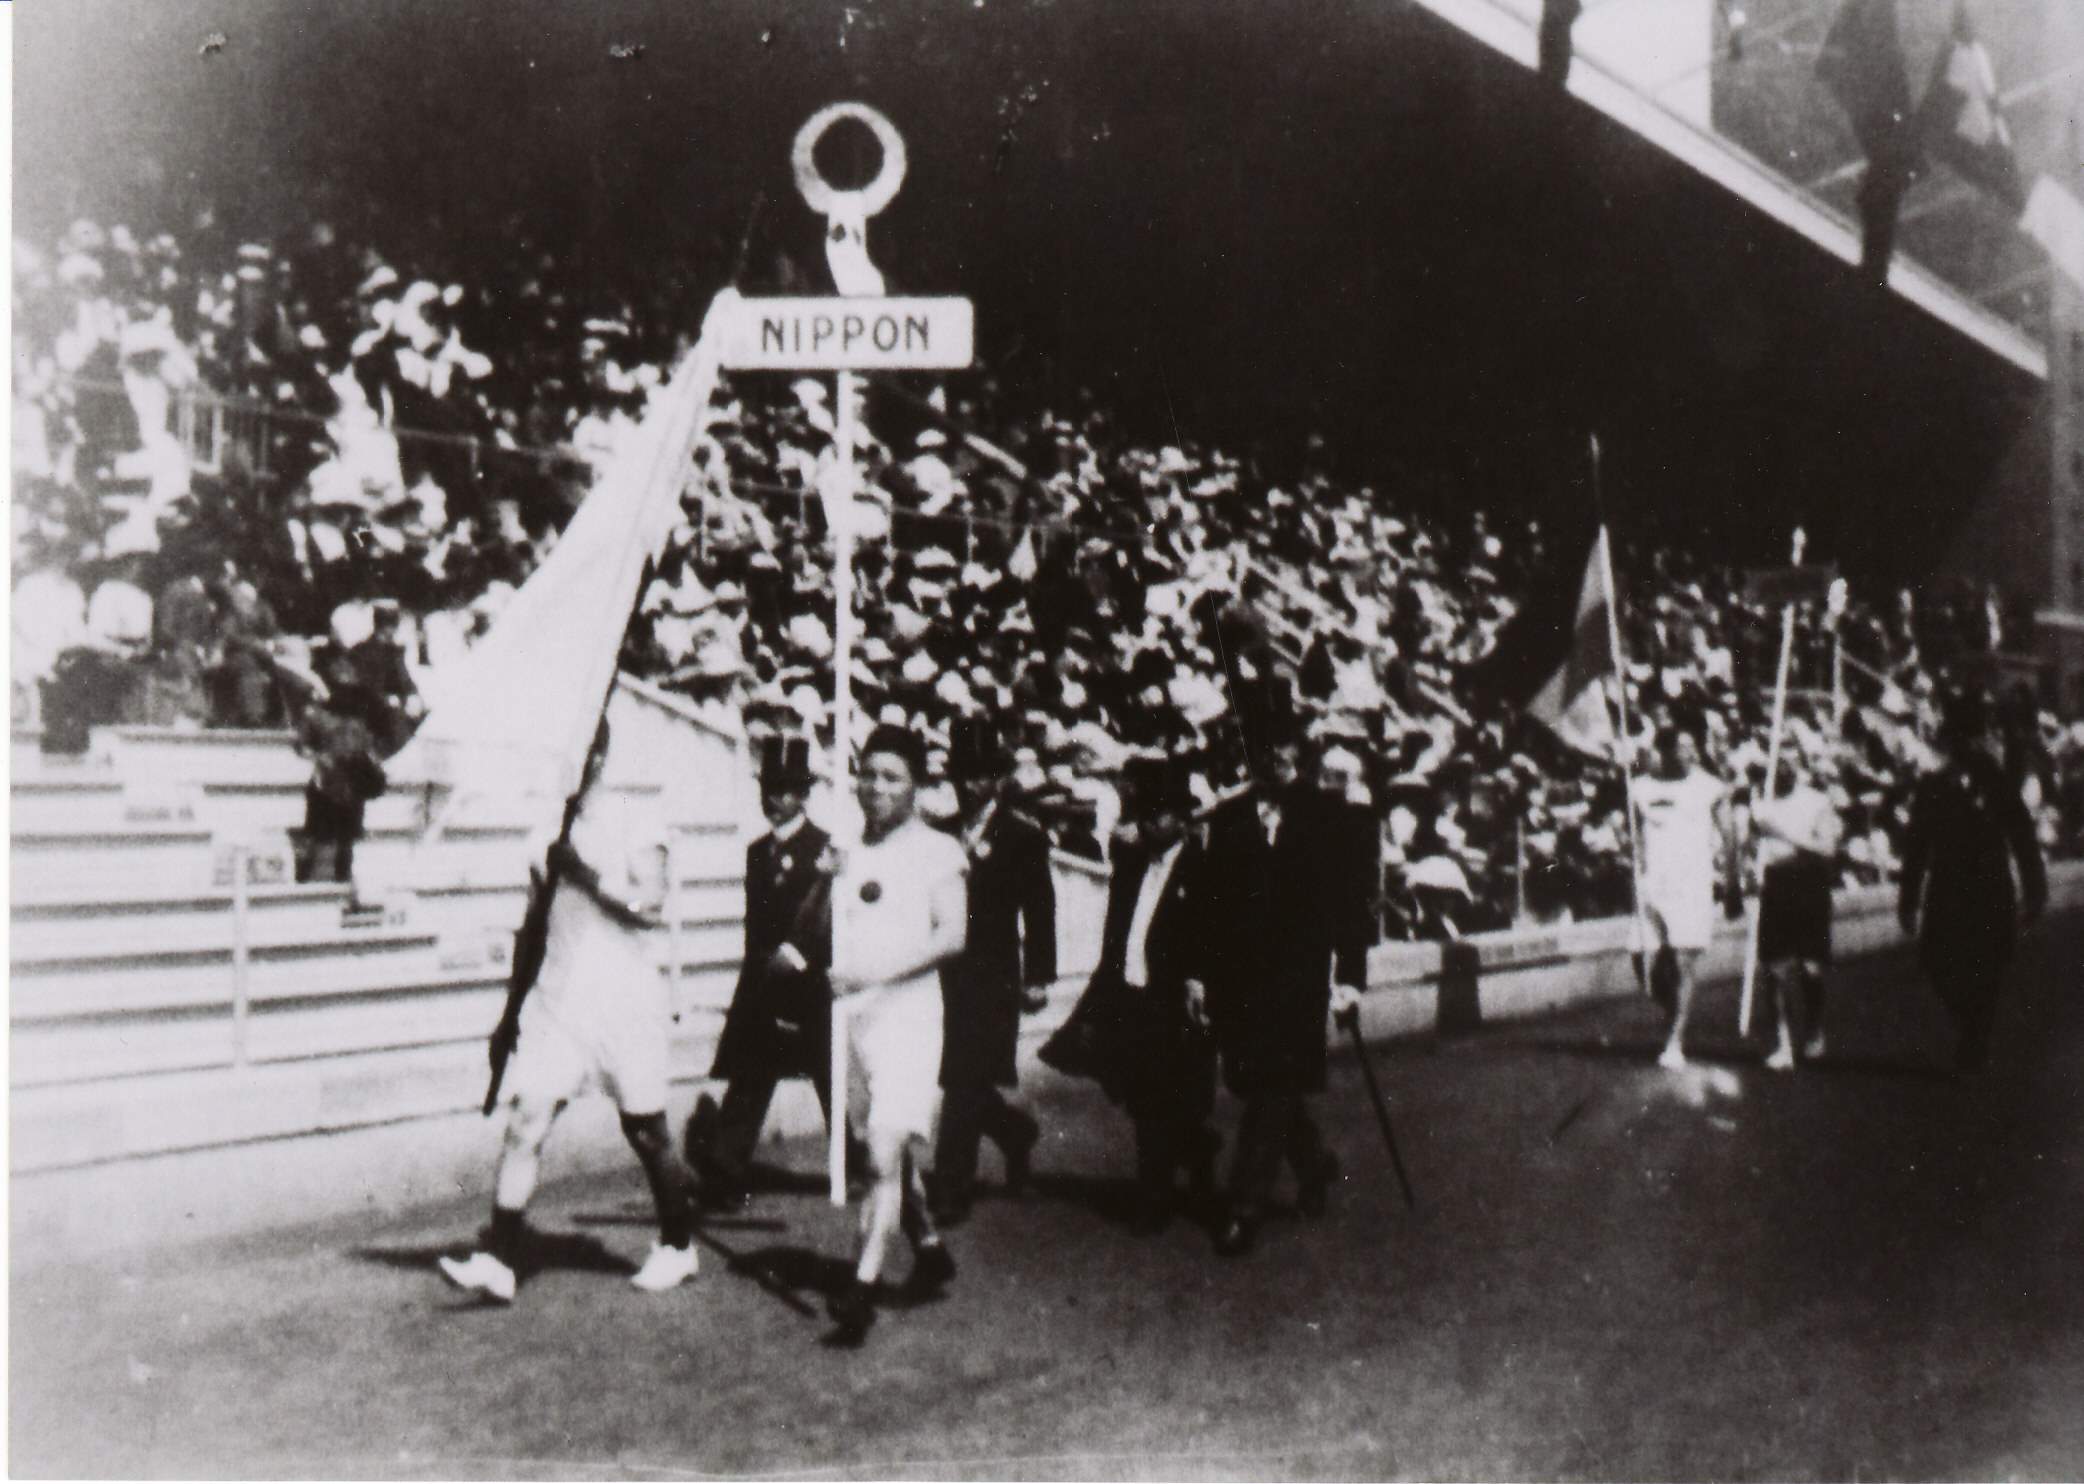 Glory days: Japan's first Olympians, Shiso Kanakuri (right) and Yahiko Mishima (holding flag), at the opening ceremony for the Stockholm Games in 1912.